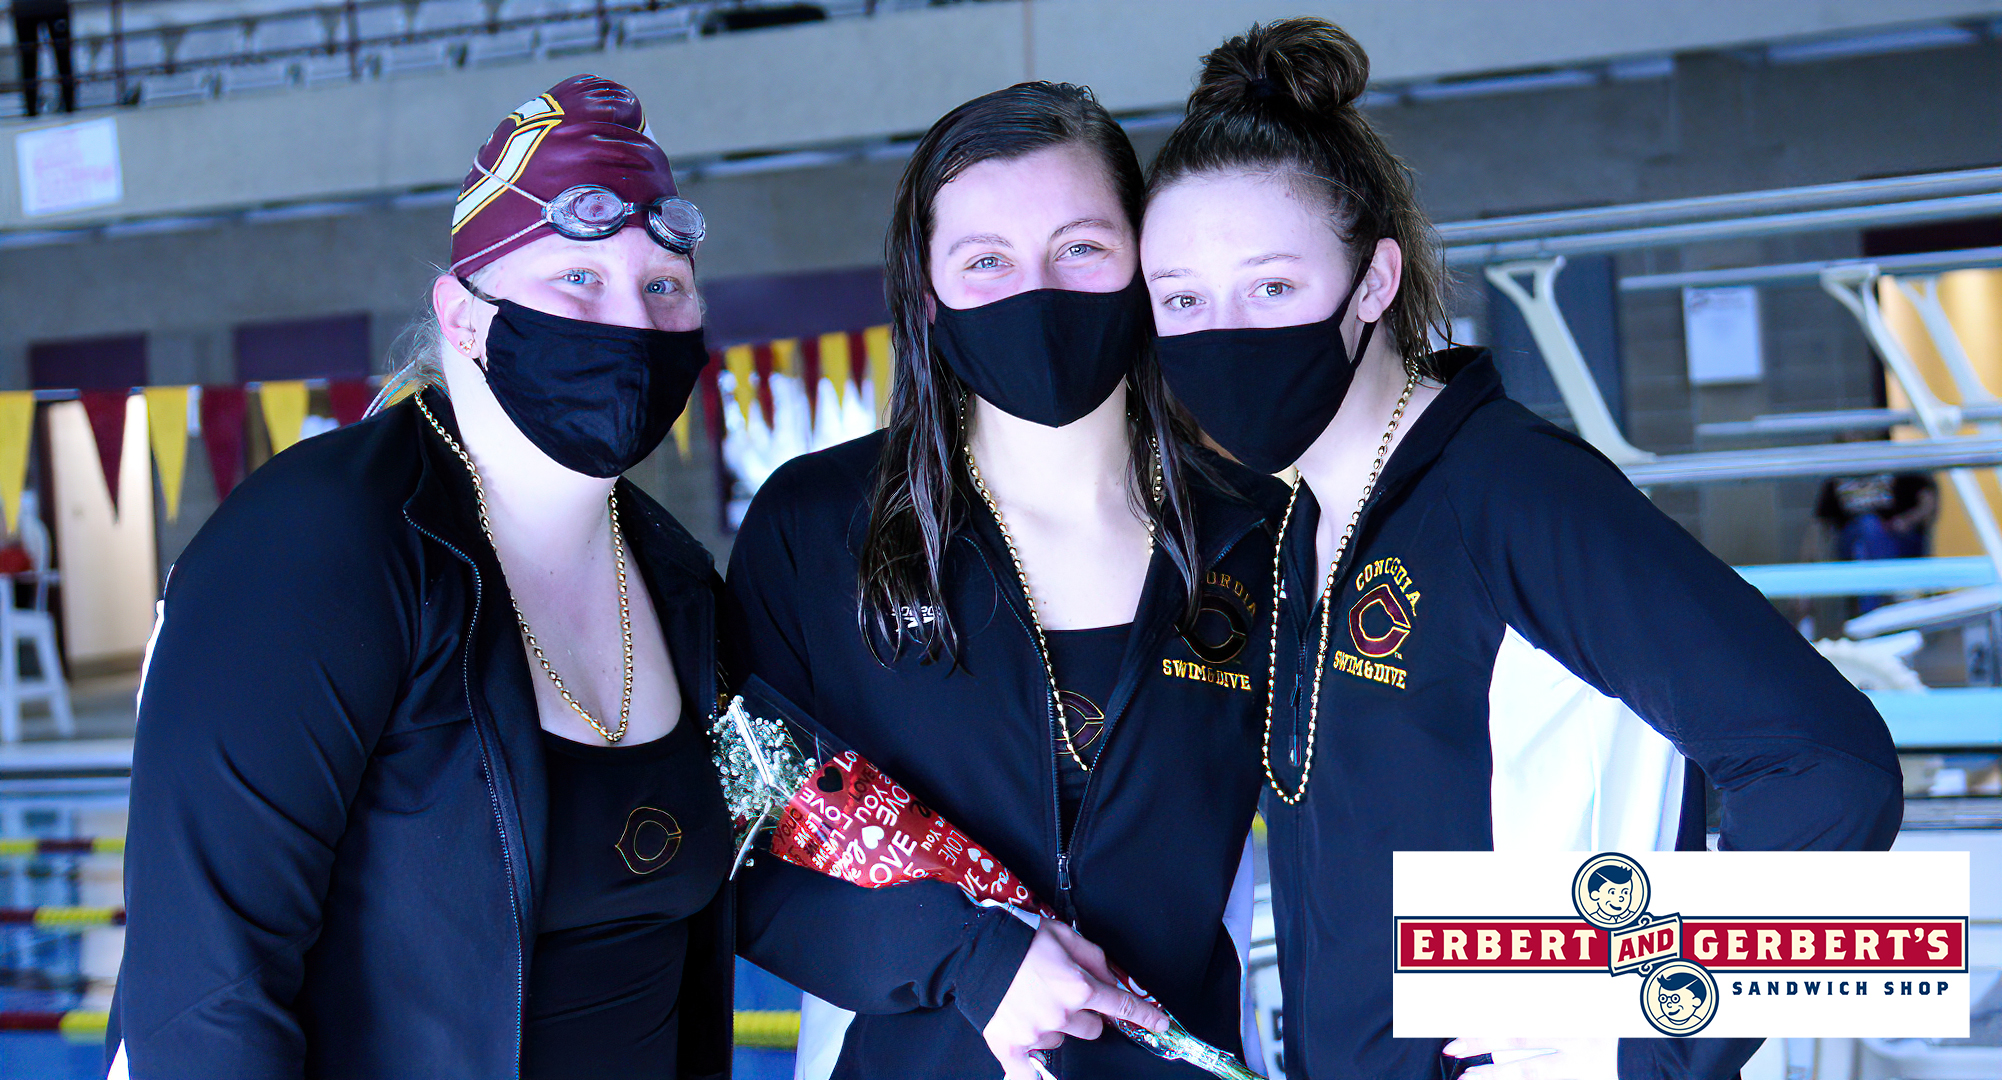 Senior Anna Backes (M) was honored by teammates, and received gifts from Lindsey Biebl (L) and Alex Rasmussen, during the Cobbers' dual meet with Augsburg. Backes won the 200 IM and 500 Free to help CC win 83-71.